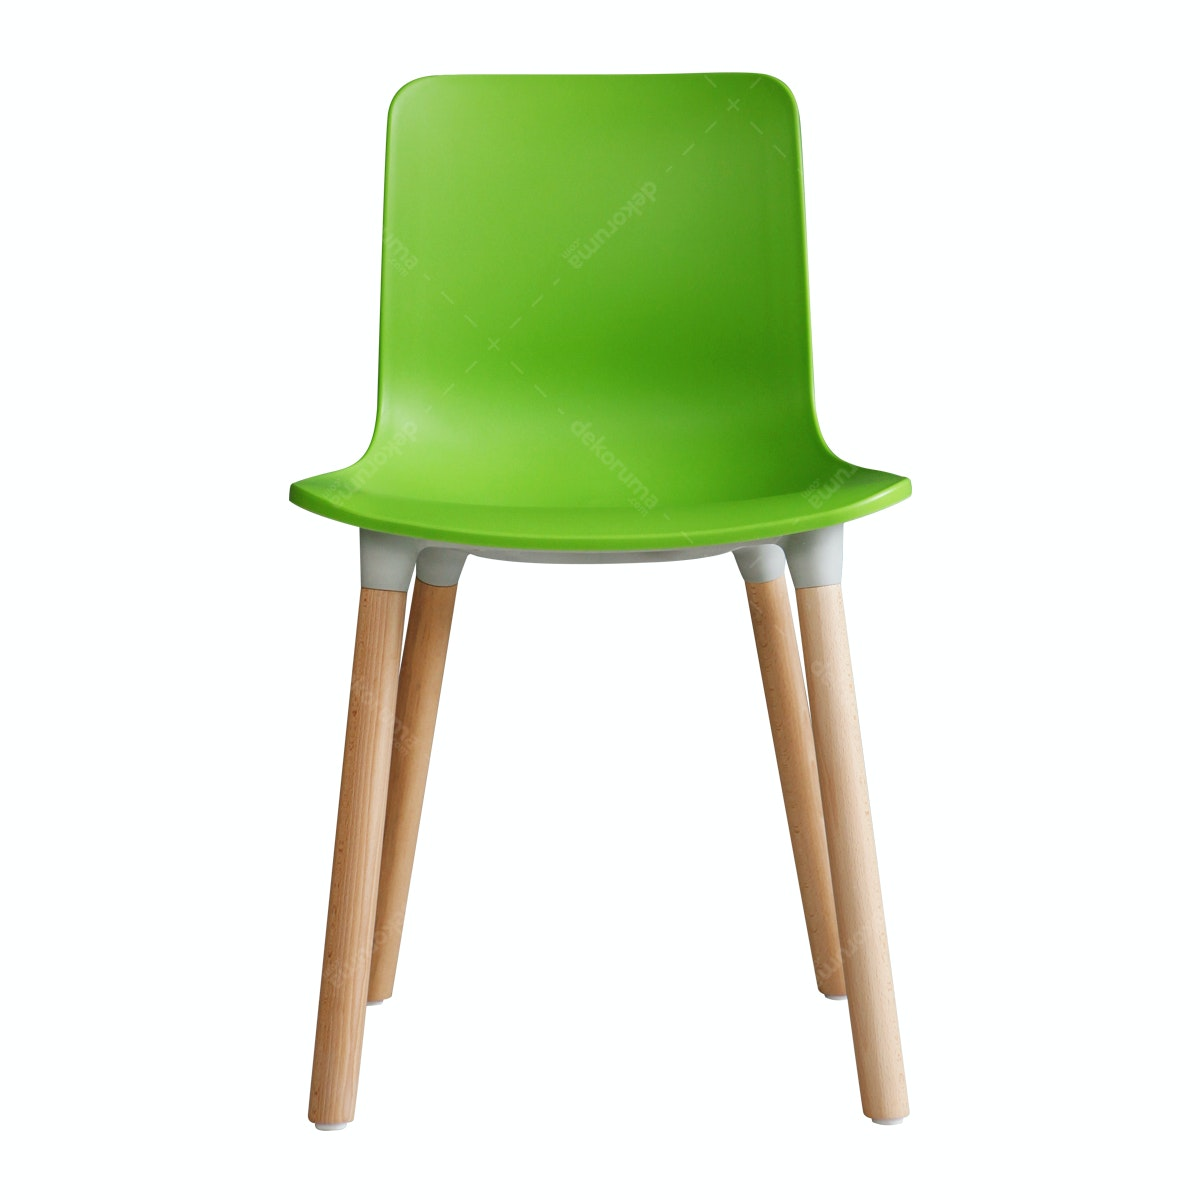 Olive House PVC Chair Hijau